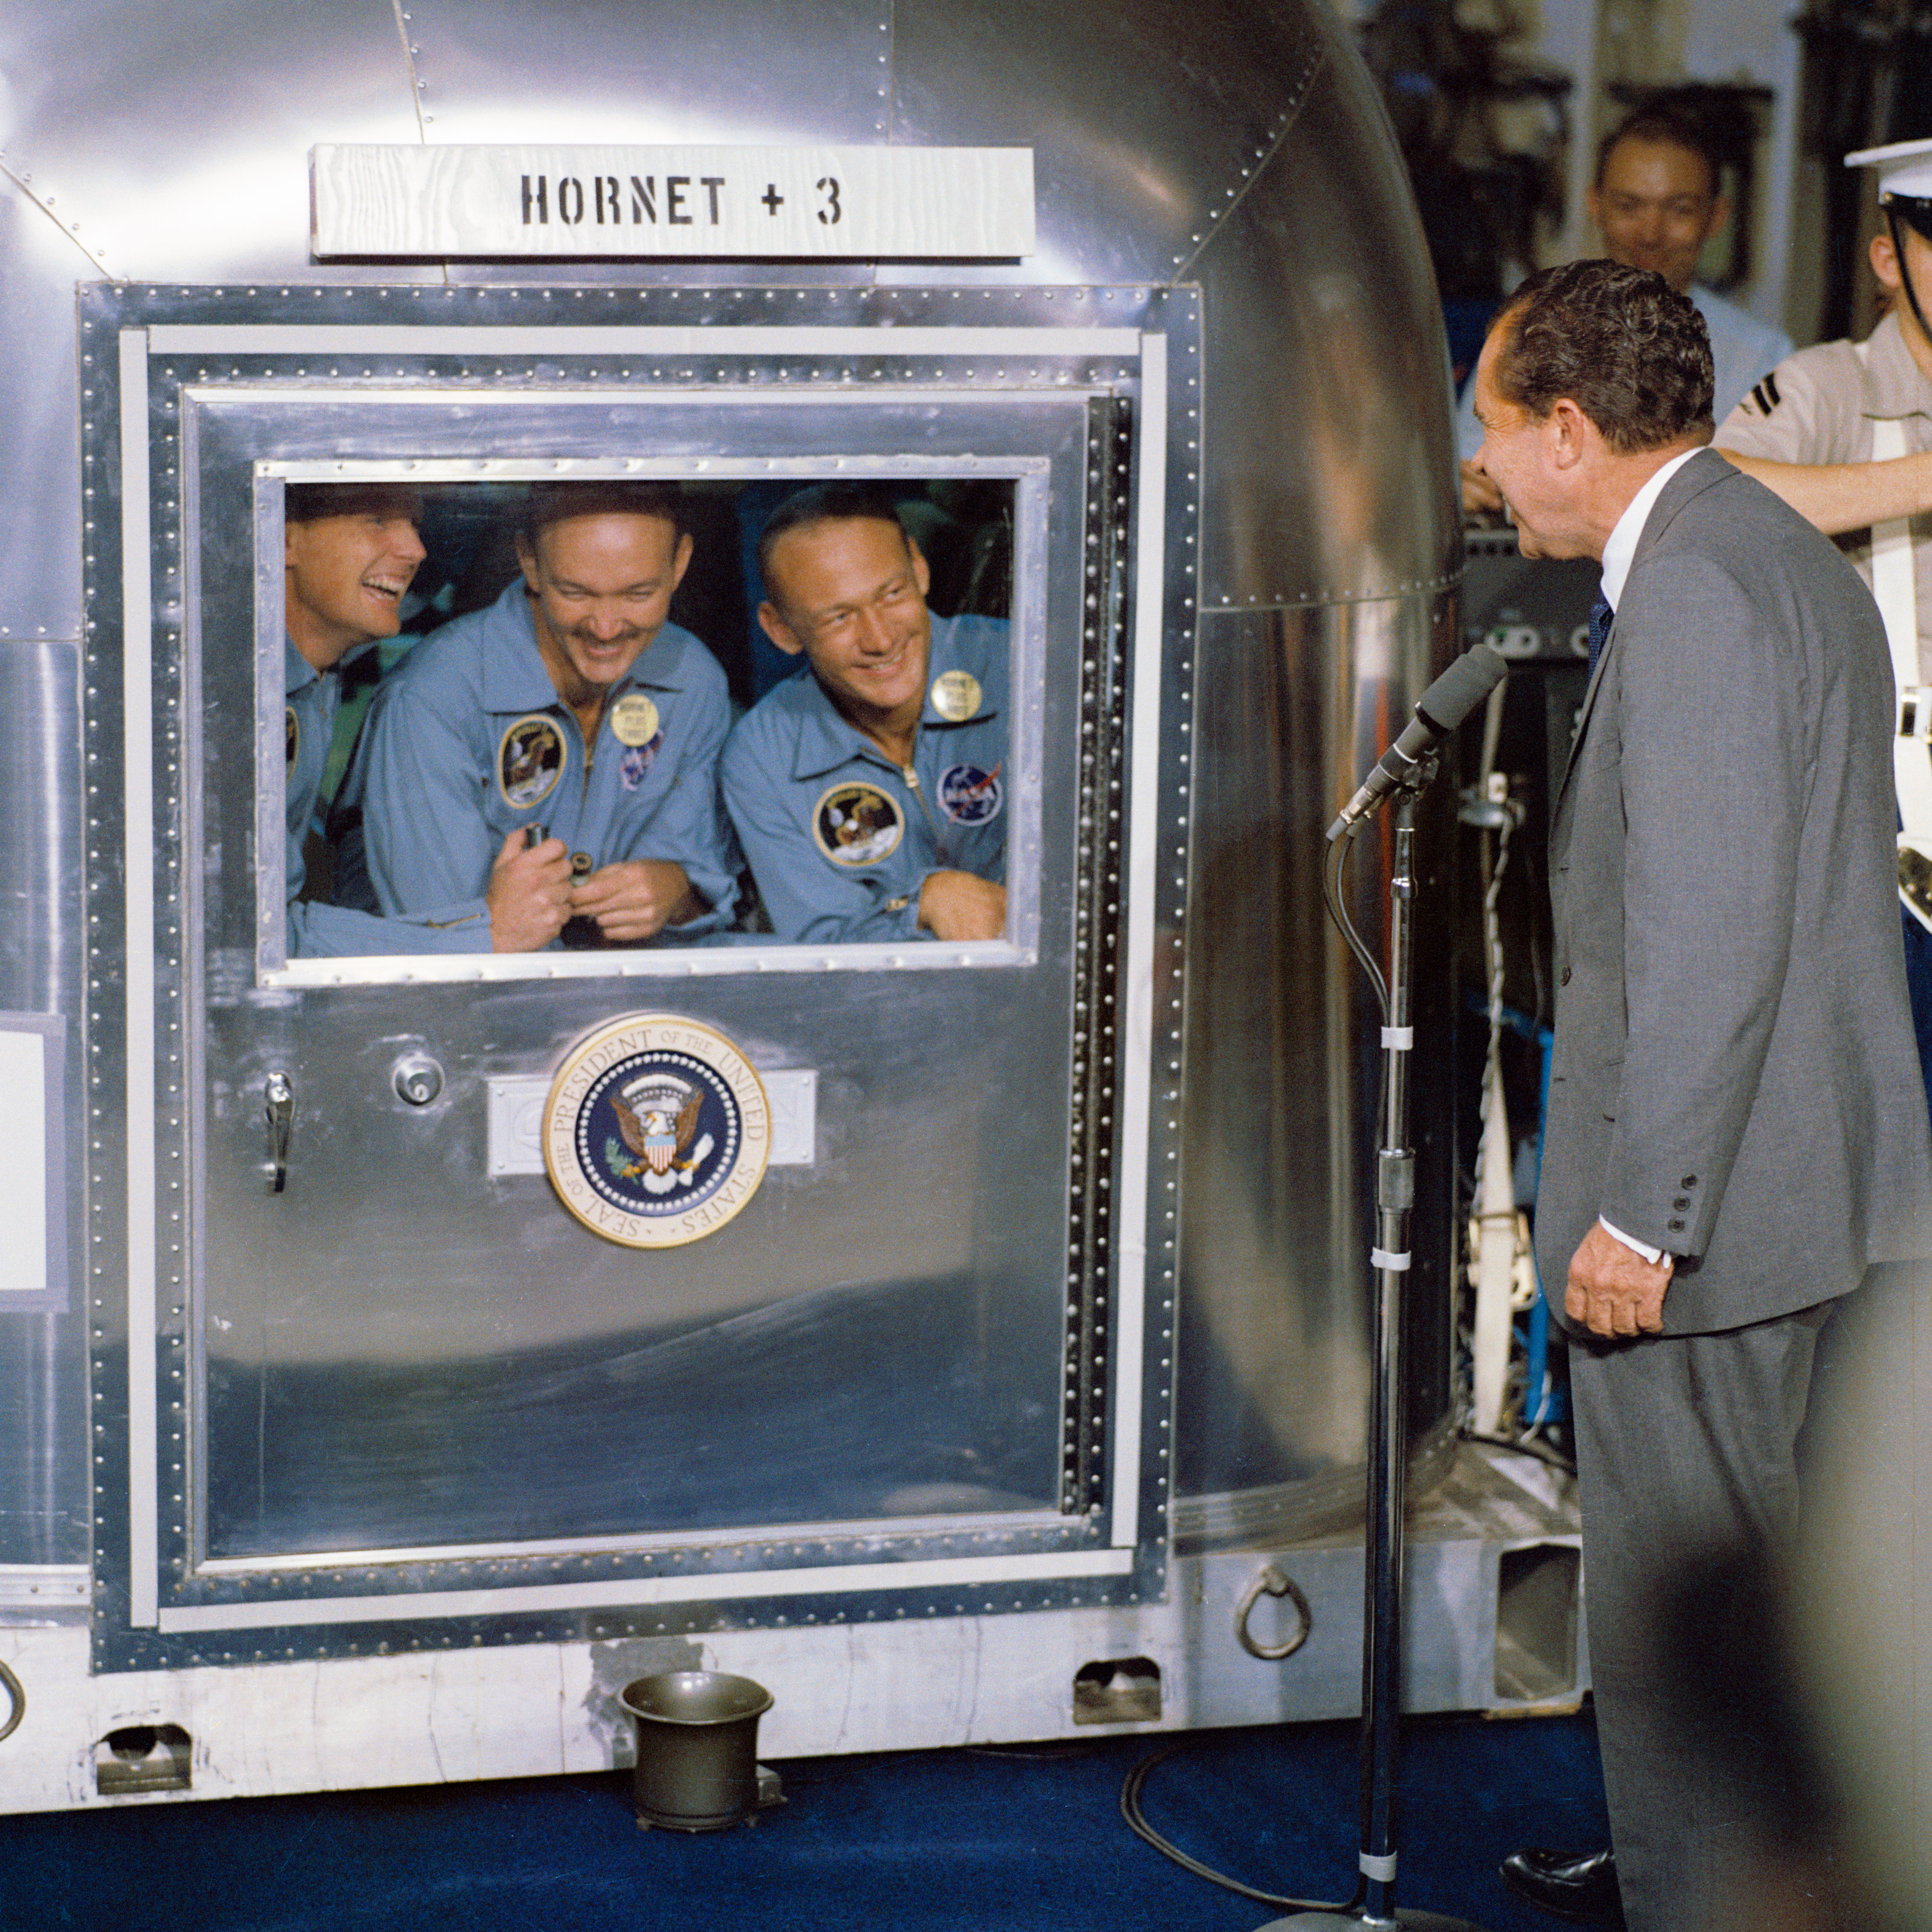 President Nixon greeted Apollo 11 astronauts Neil Armstrong, Mike Collins and Buzz Aldrin, who went immediately into medical quarantine after their return from the moon on July 24, 1969